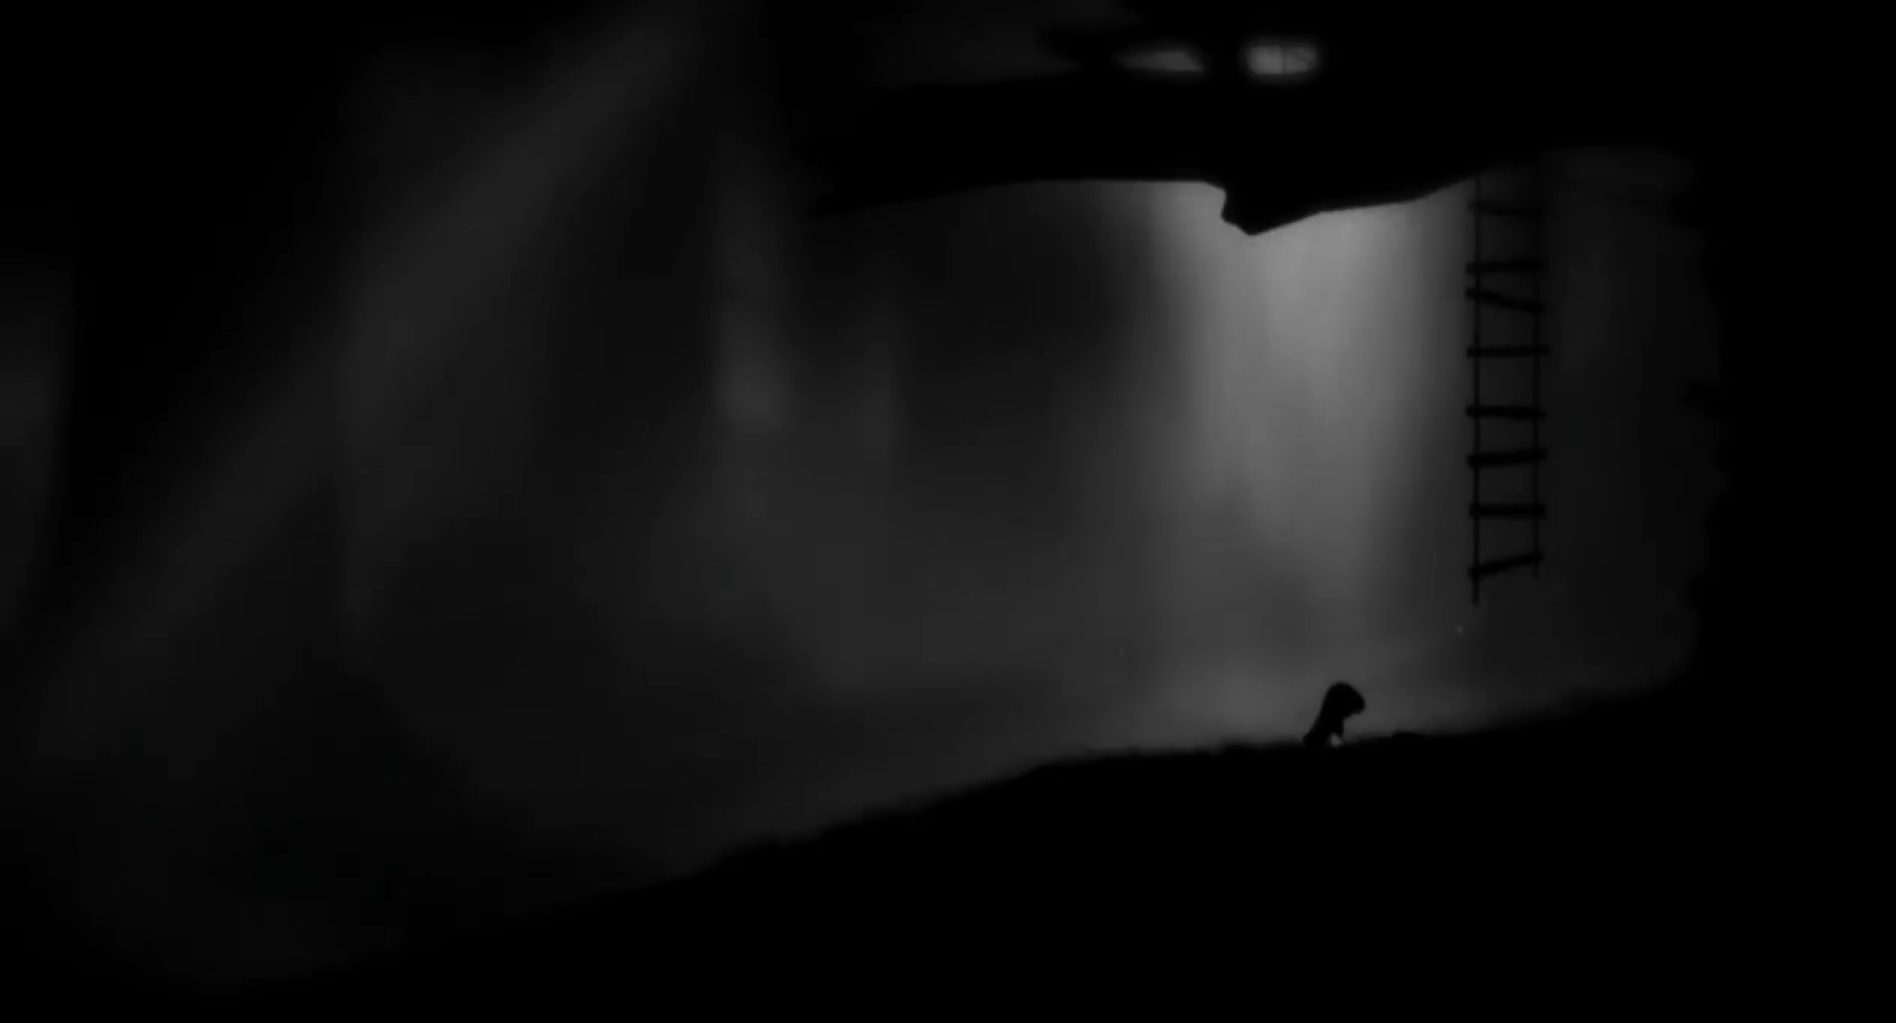 Limbo - GhostGamers2000